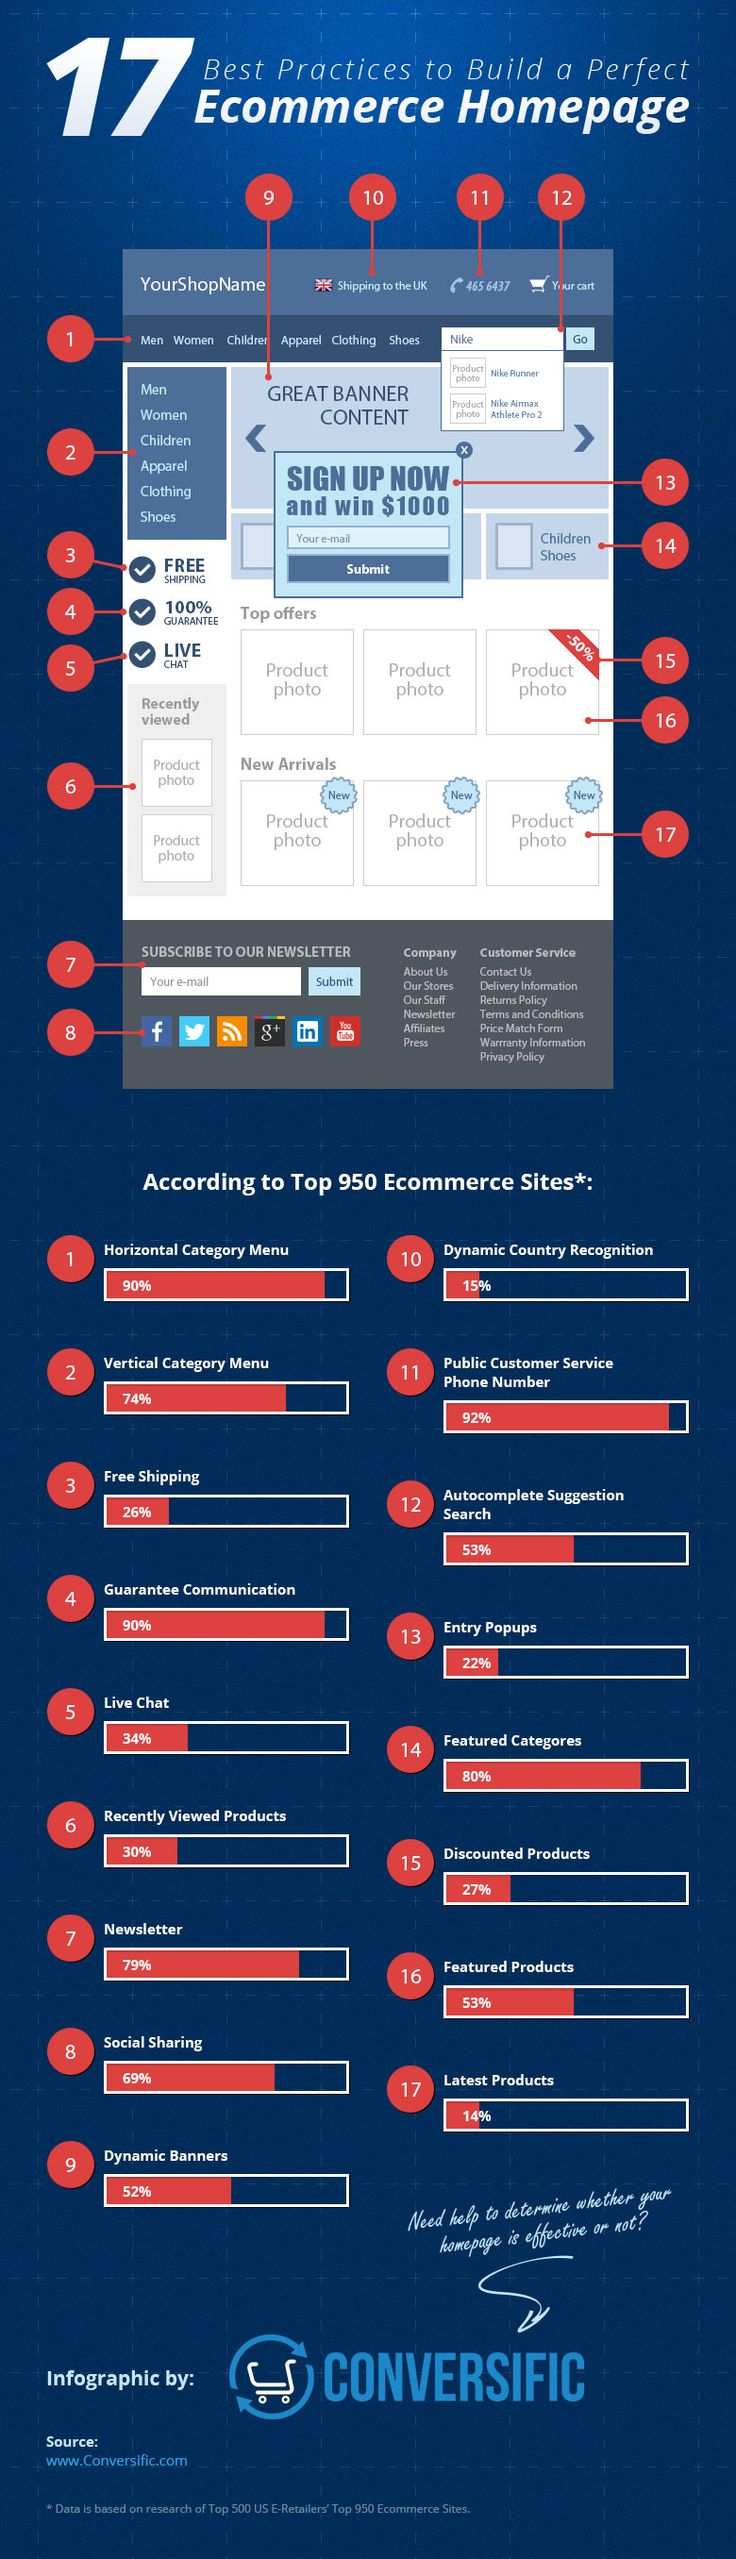 In the following infographic we introduce you to what kind of elements should be placed on the ecommerce homepage and how many other ecommerce sites use these elements by percentage.